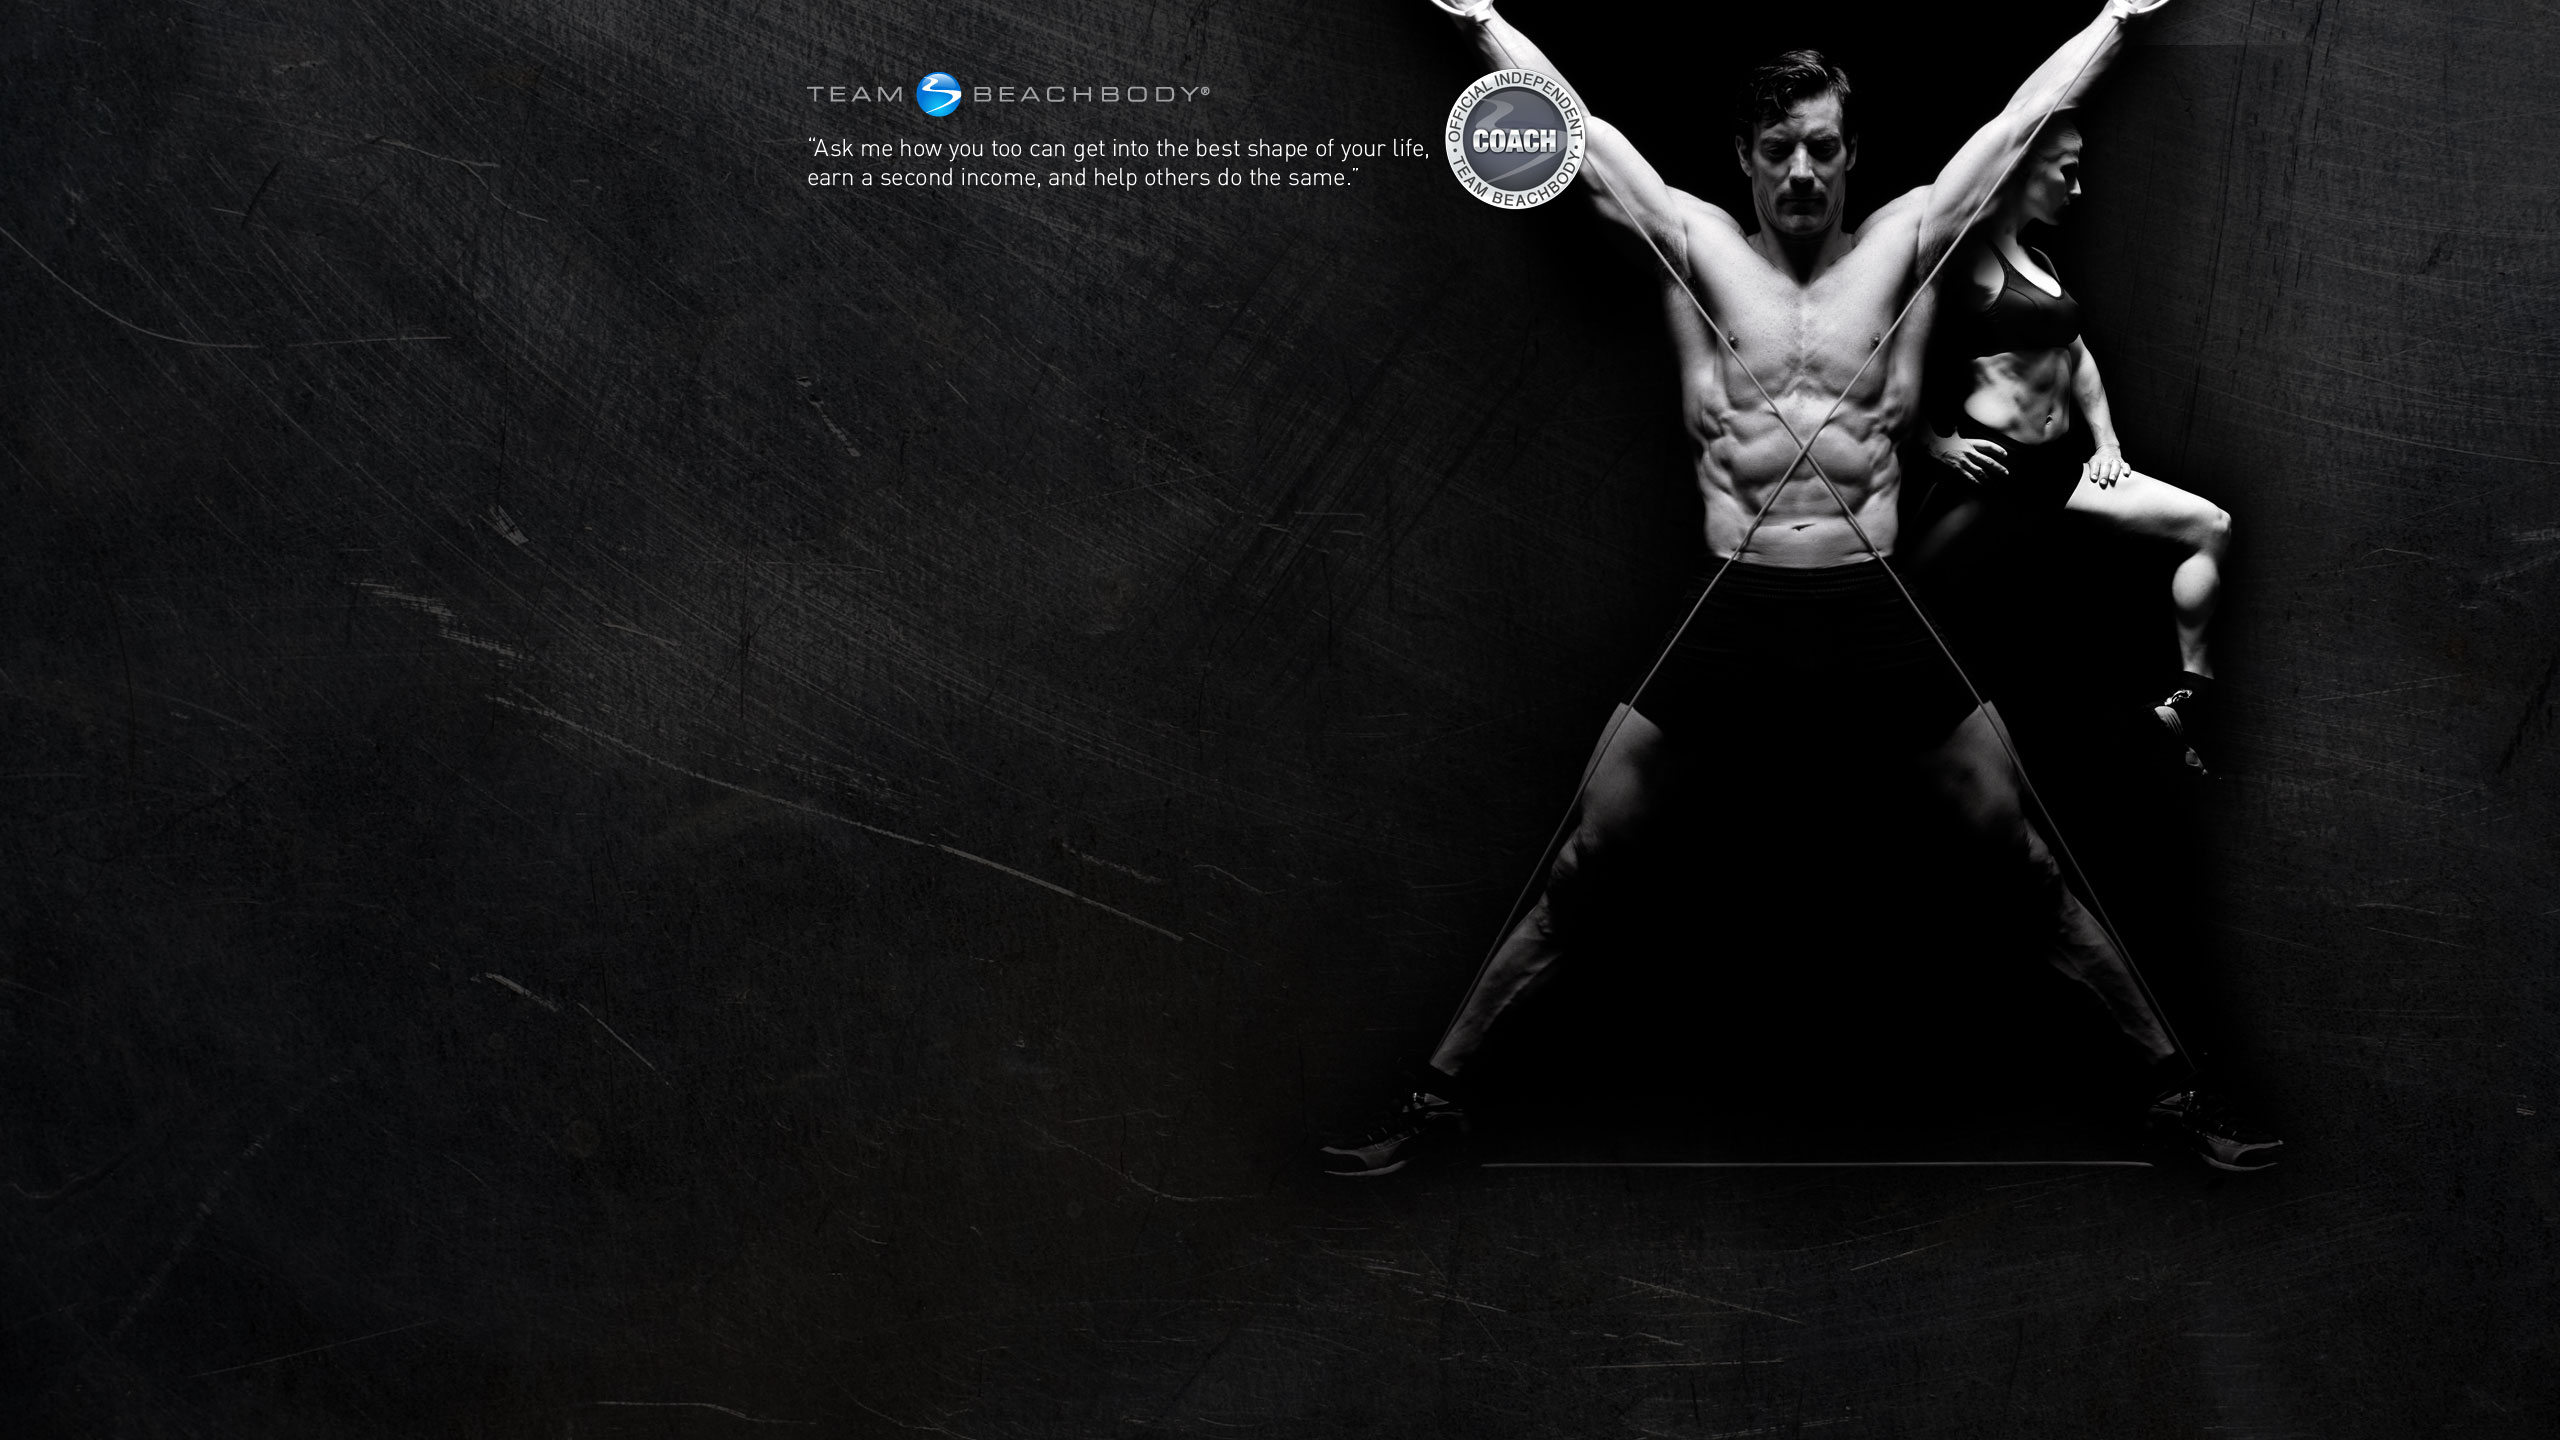 Fitness Wallpapers 11 Desktop Wallpaper   Hivewallpapercom 2560x1440